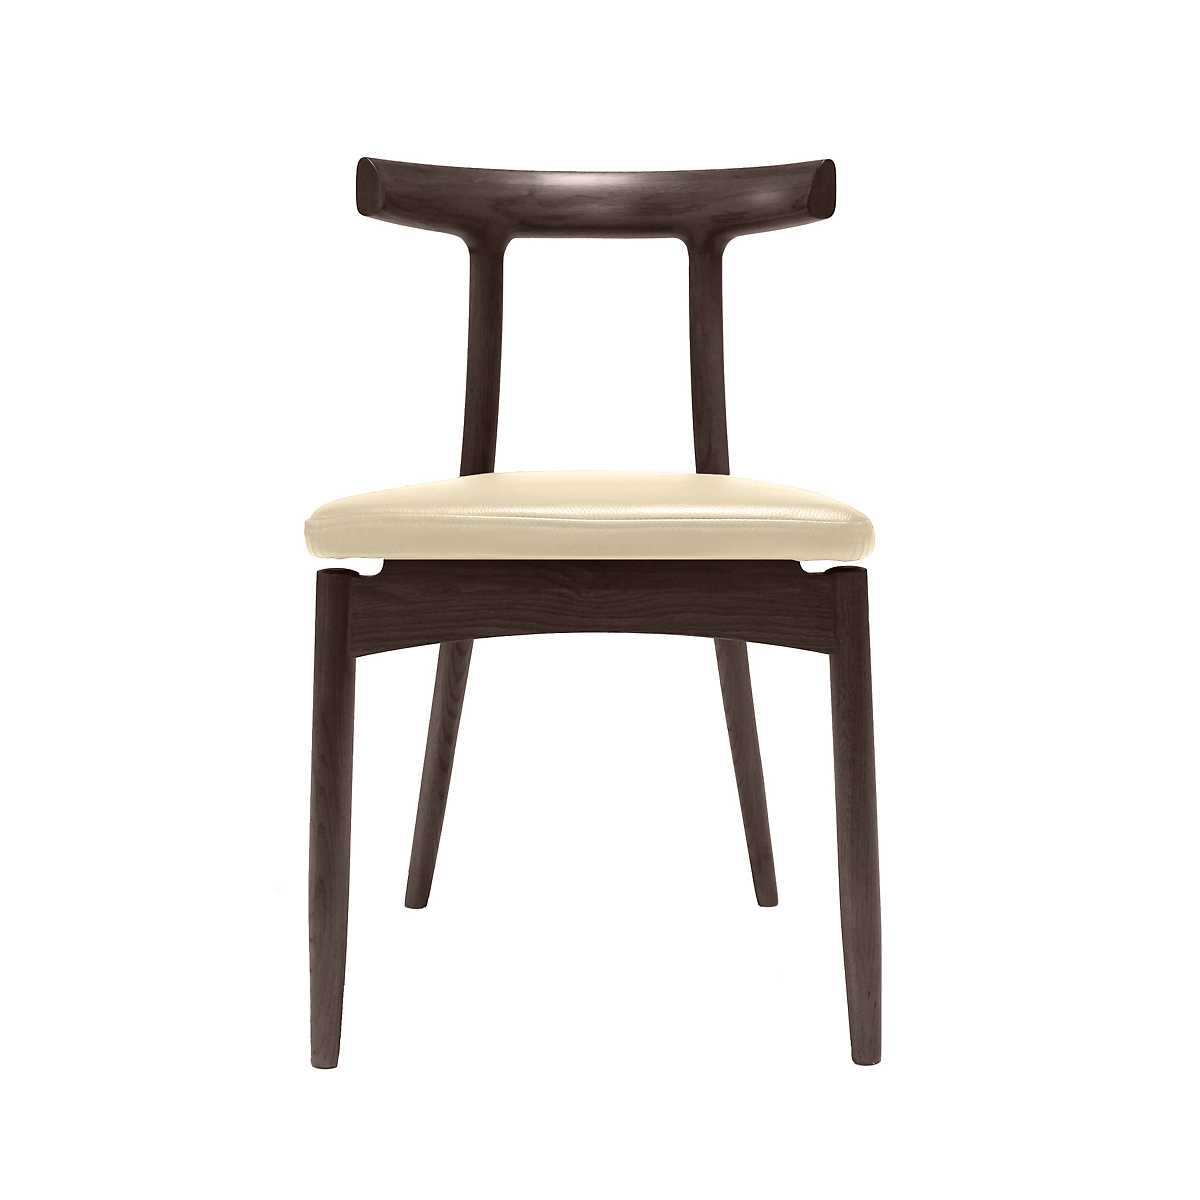 Maria Yee Arial Leather Horn Chair, Sand Leather & Ebony Finish